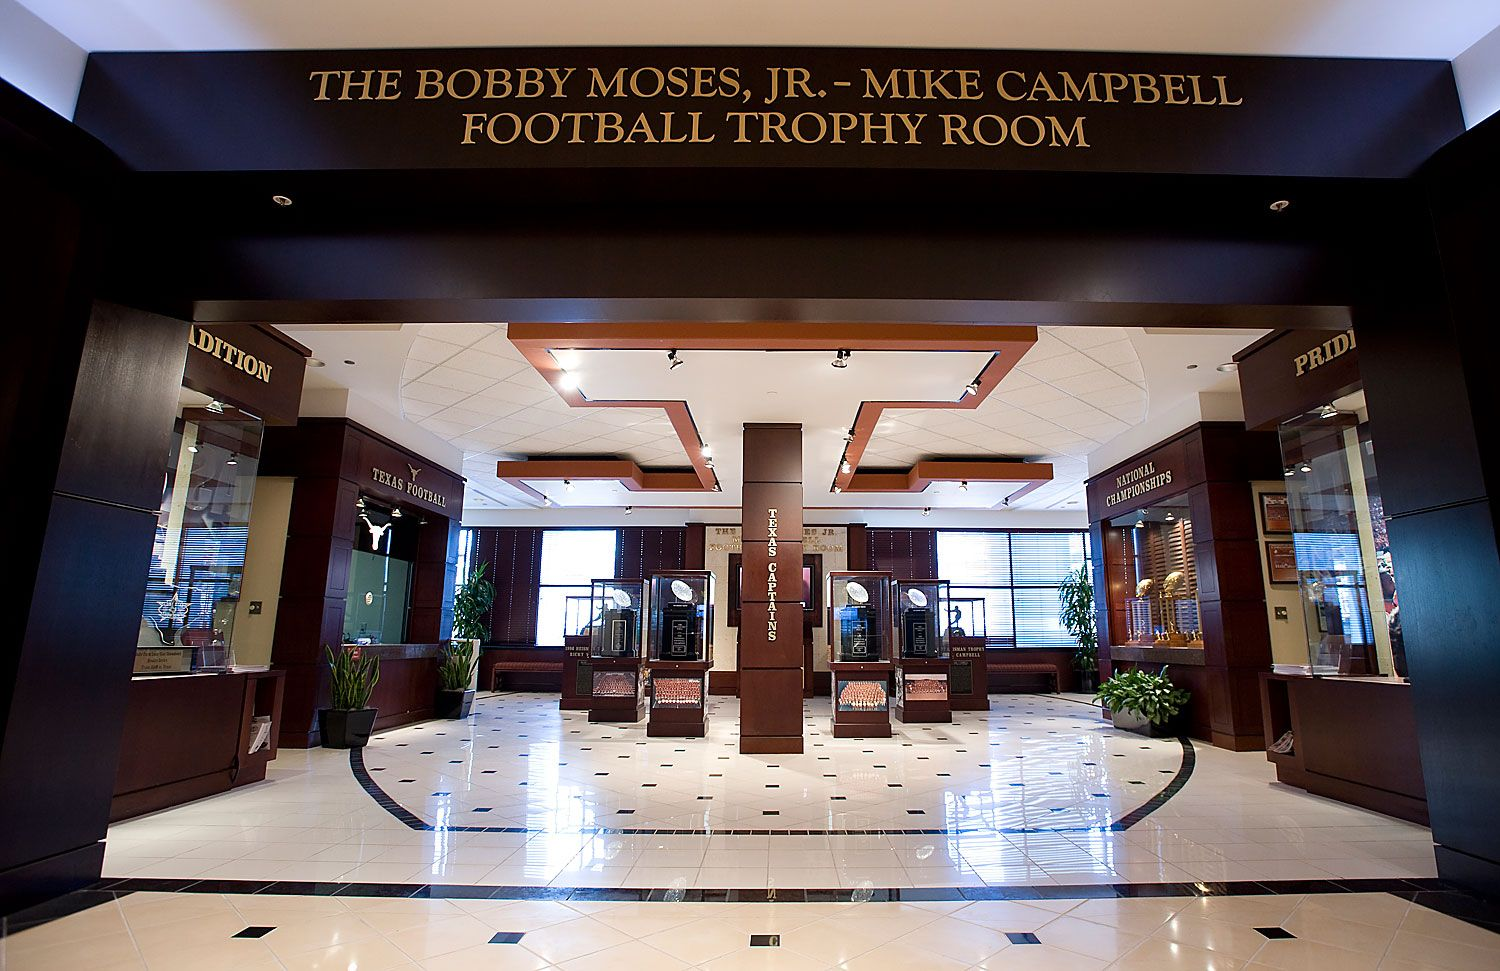 Bobby Moses Jr Mike Campbell Football Trophy Room Including Players Lounge